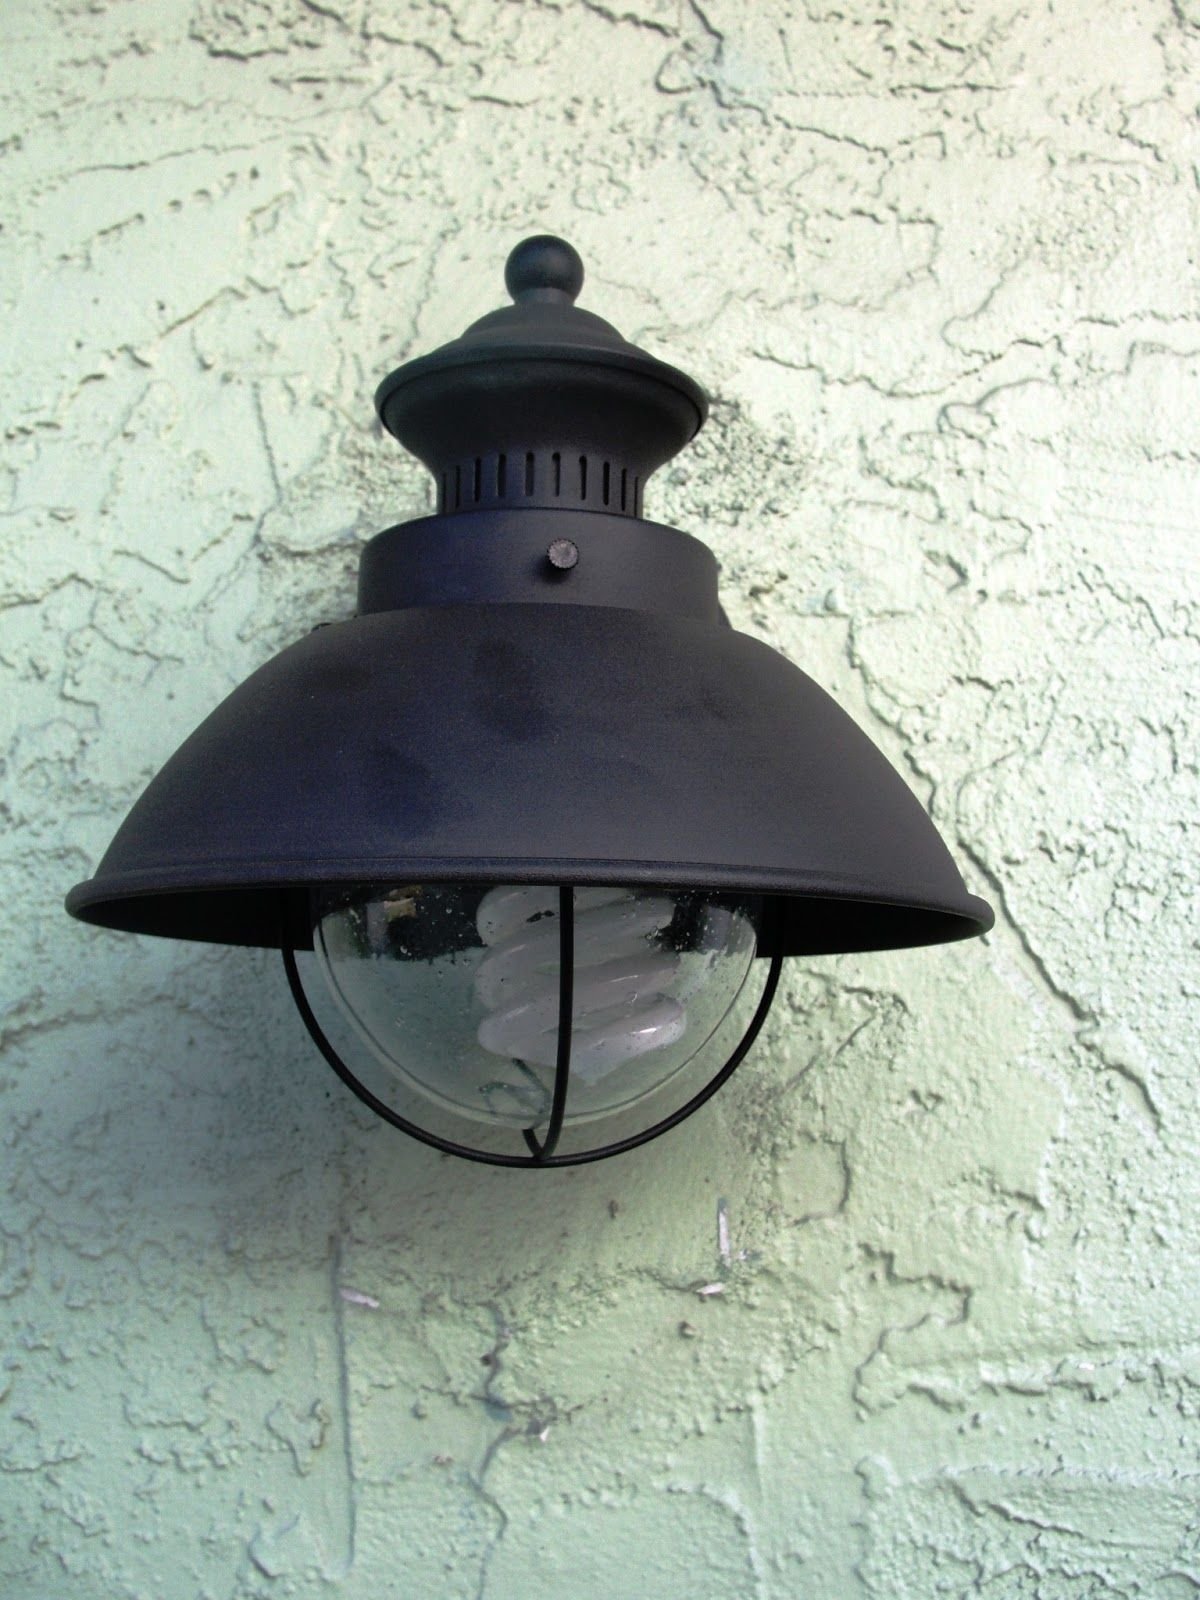 Magnificent Lowes Outdoor Flood Light Bulbs Outdoor Flood Lights Flood Lights Light Bulbs